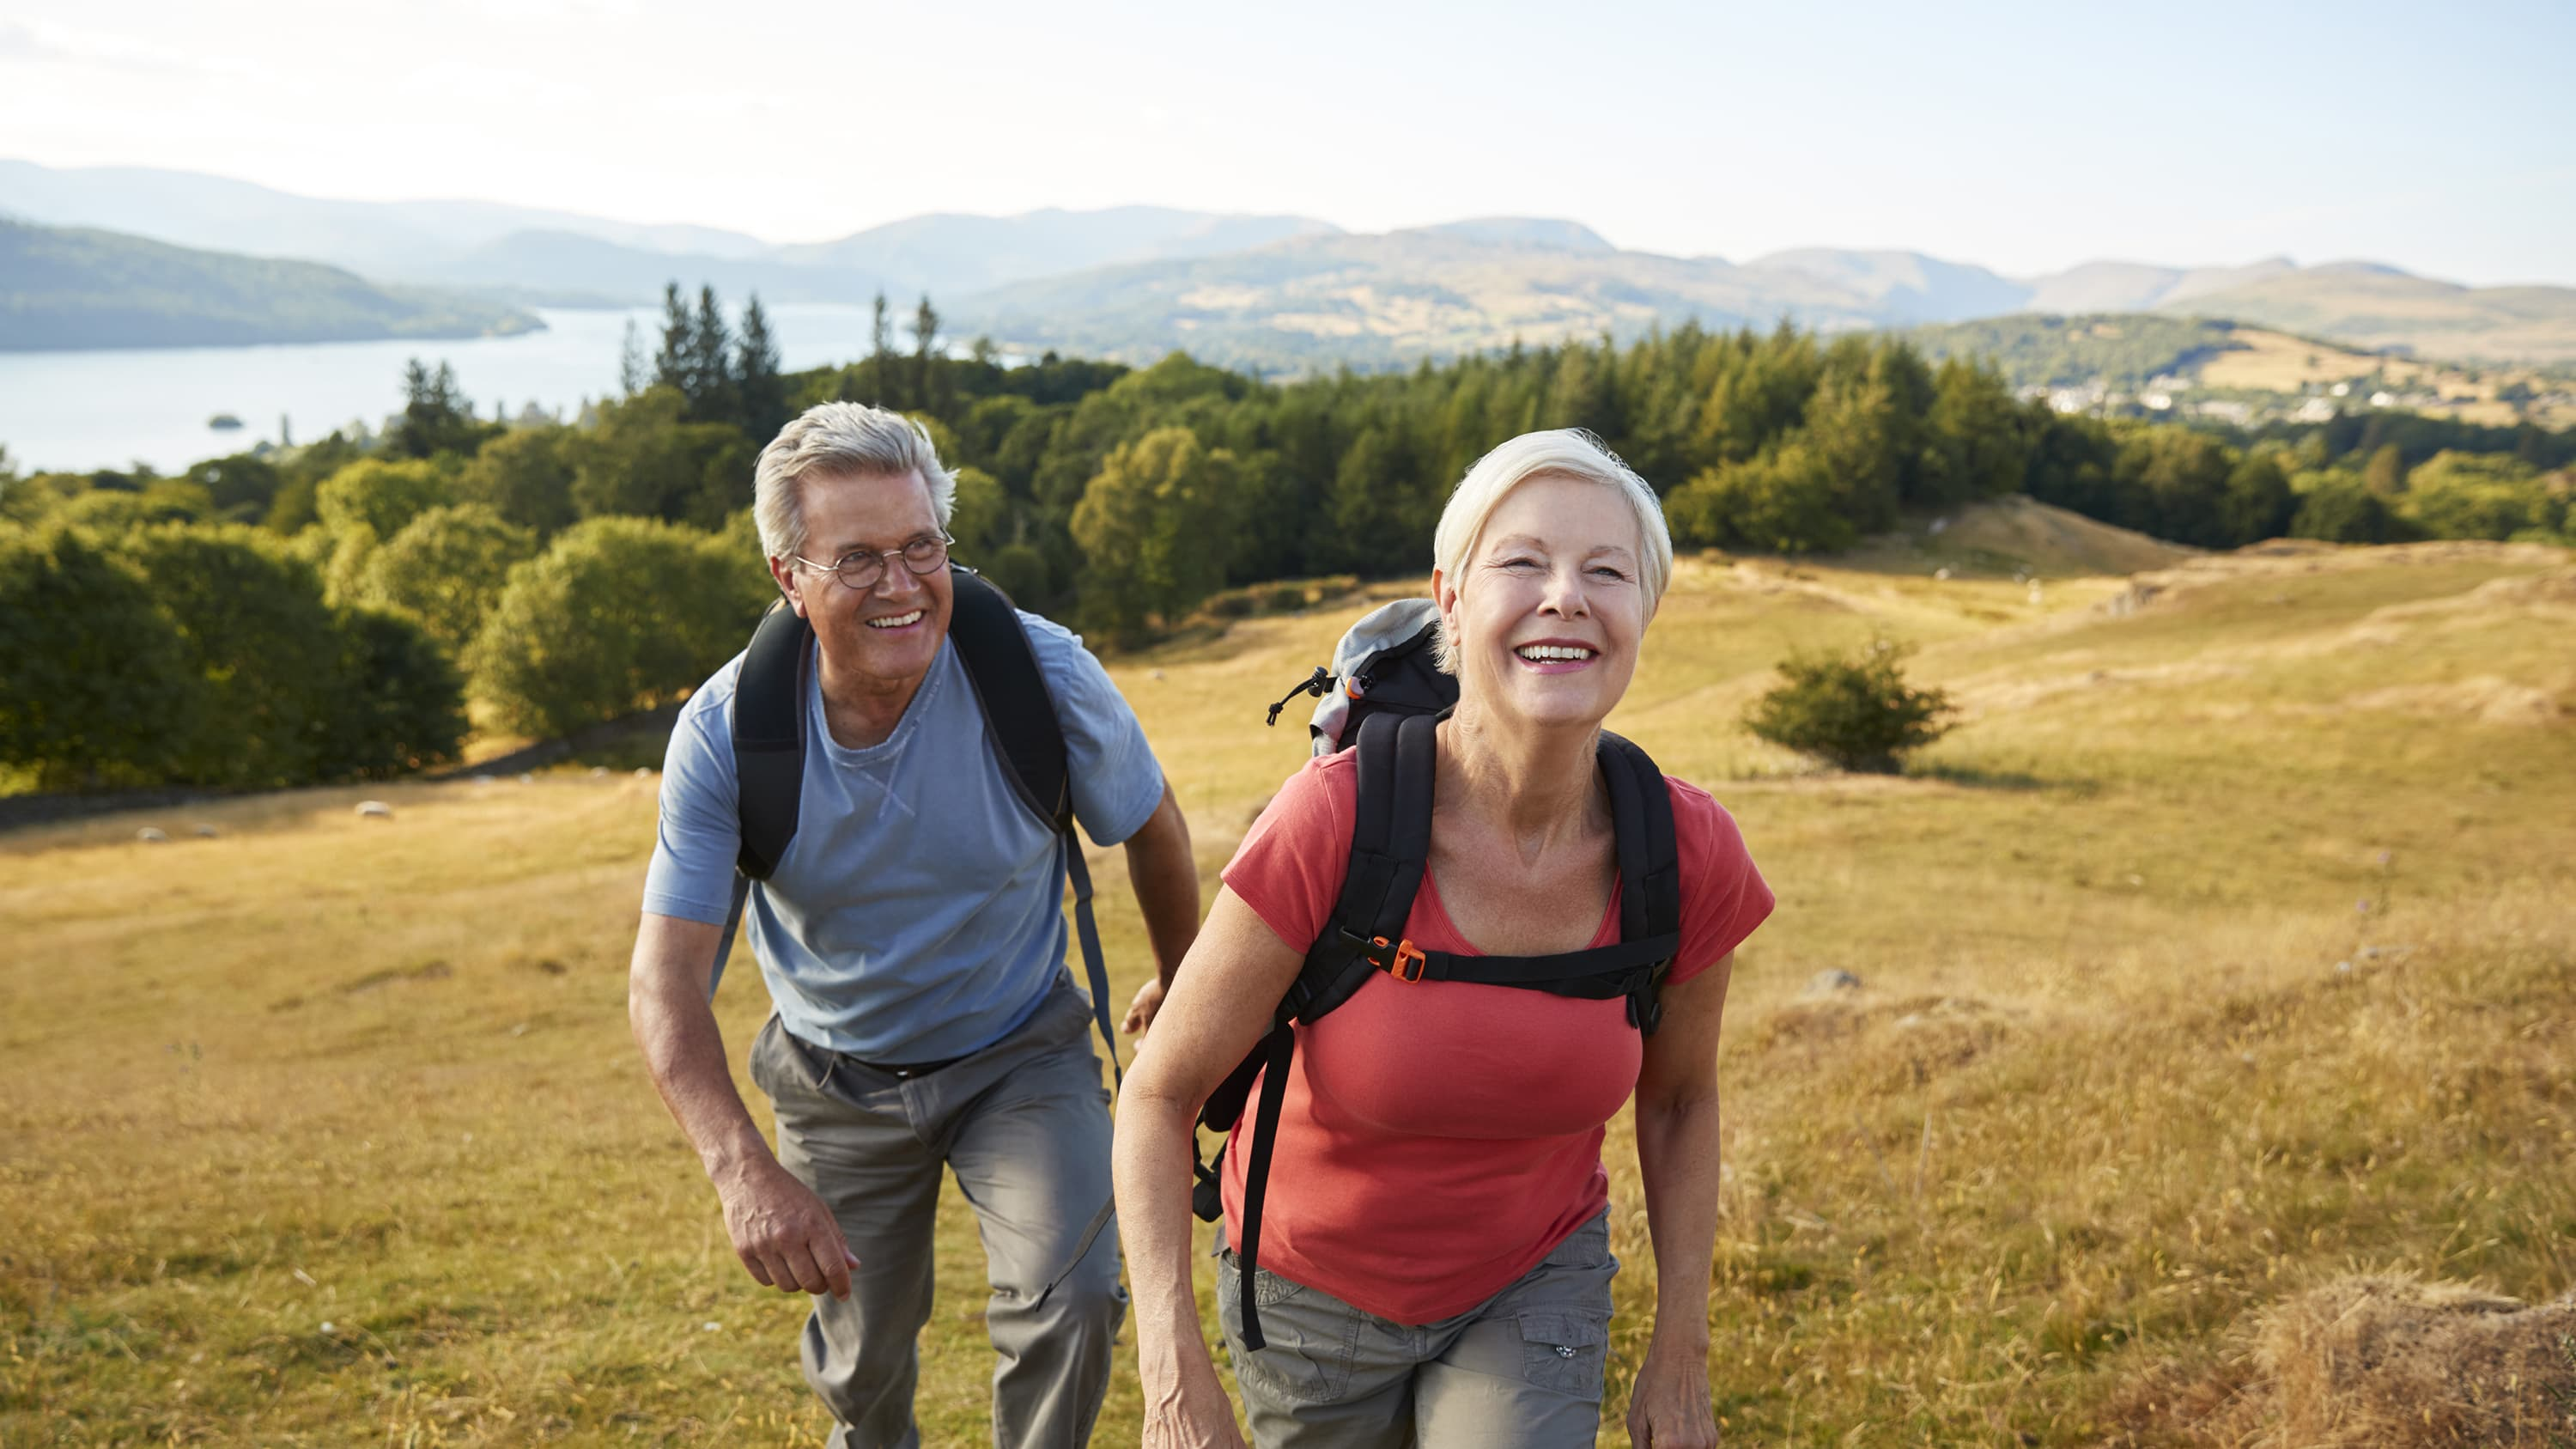 An older couple hiking after undergoing bicuspid aortic valve repair.